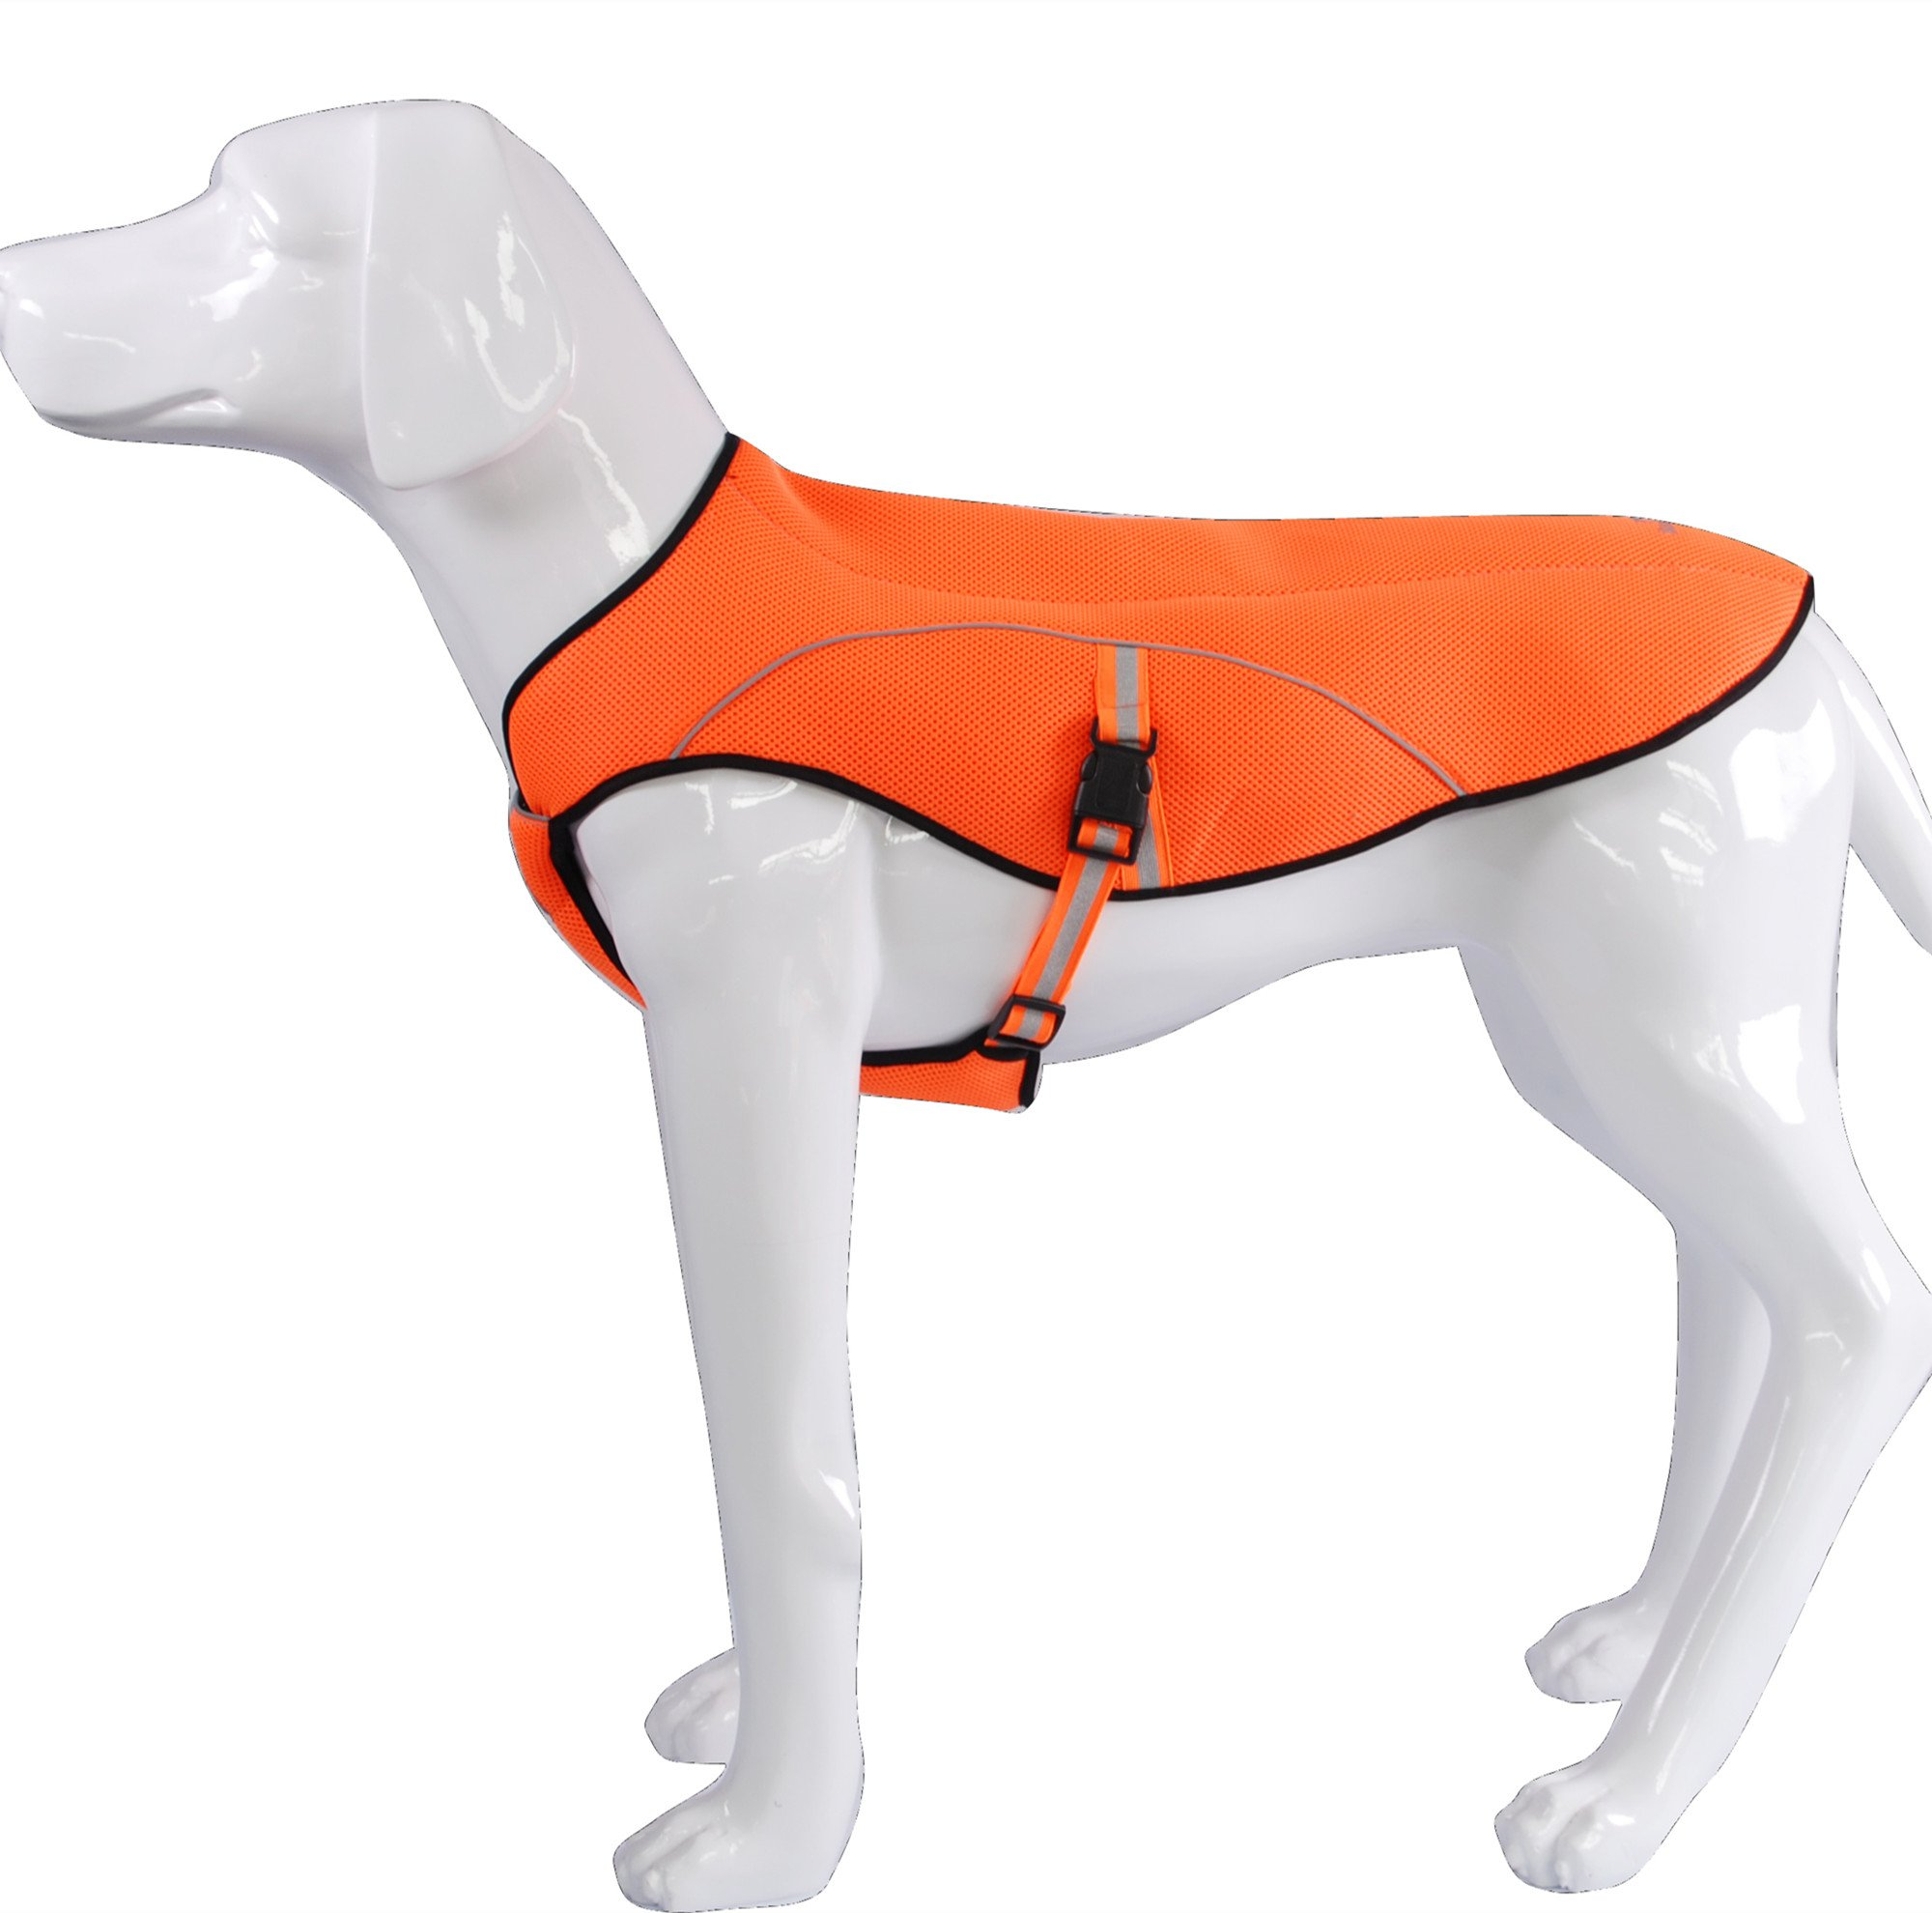 KINGSWELL Dog Jacket, Dog Anxiety Jacket Vest Poncho Clothing for Large Medium Small Dogs Outdoor Hiking Breathable Fleece Coat (L)